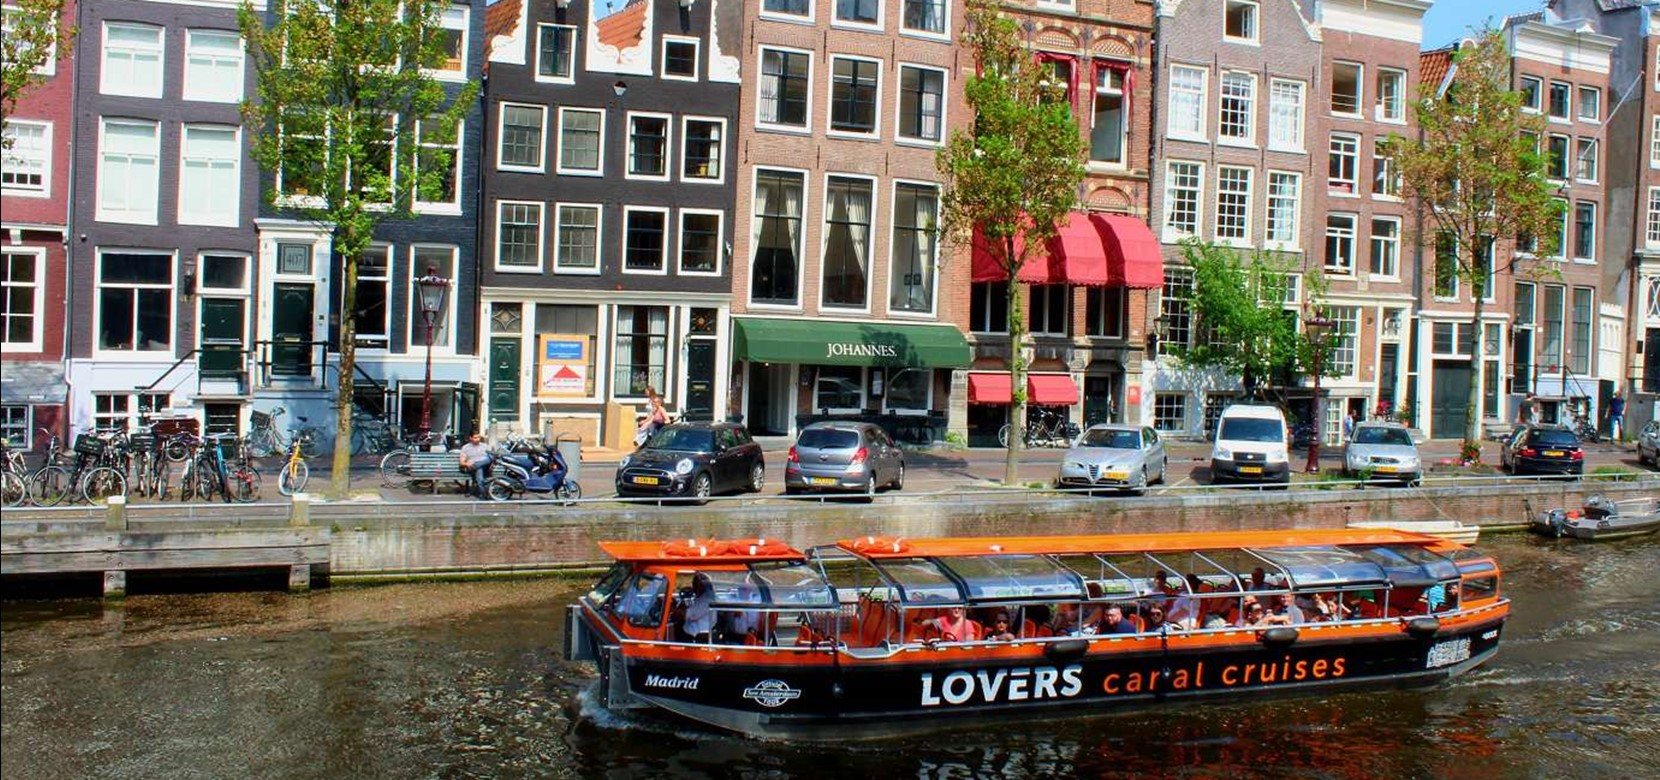 What to do in Amsterdam? Where to start?